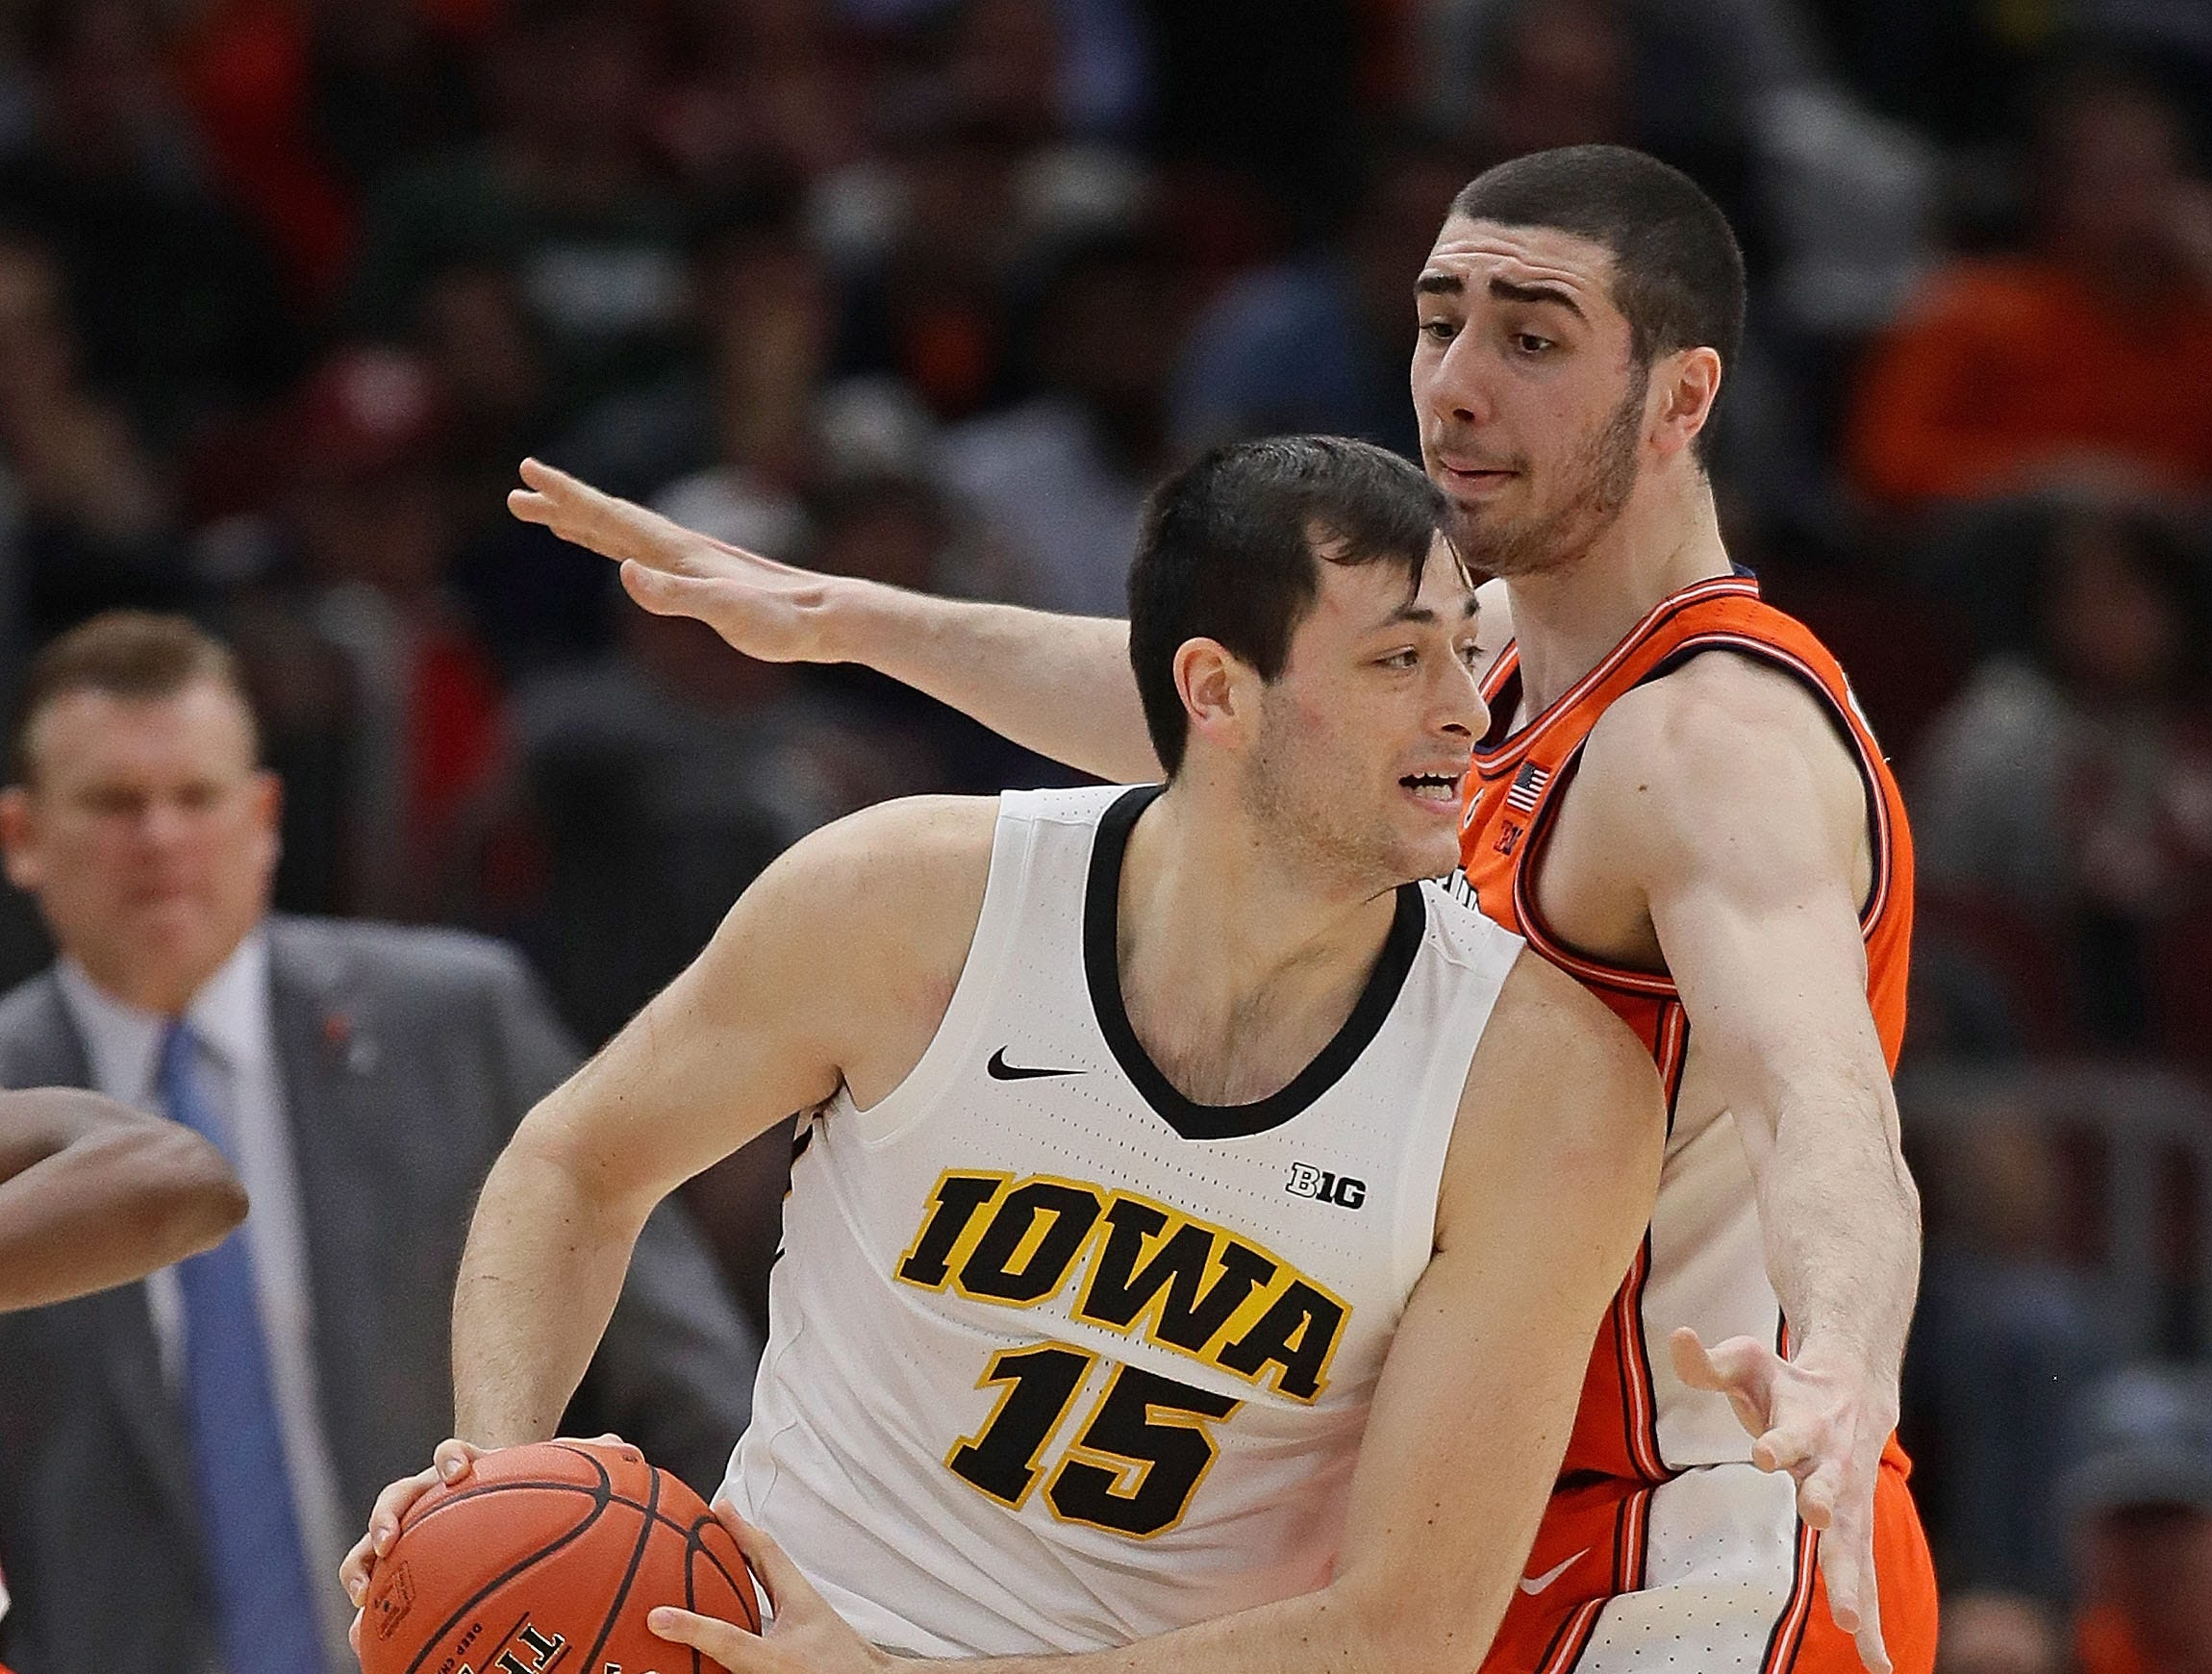 CHICAGO, ILLINOIS - MARCH 14: Ryan Kriener #15 of the Iowa Hawkeyes moves against Giorgi Bezhanishvili #15 of the Illinois Fighting Illini at the United Center on March 14, 2019 in Chicago, Illinois.  (Photo by Jonathan Daniel/Getty Images)